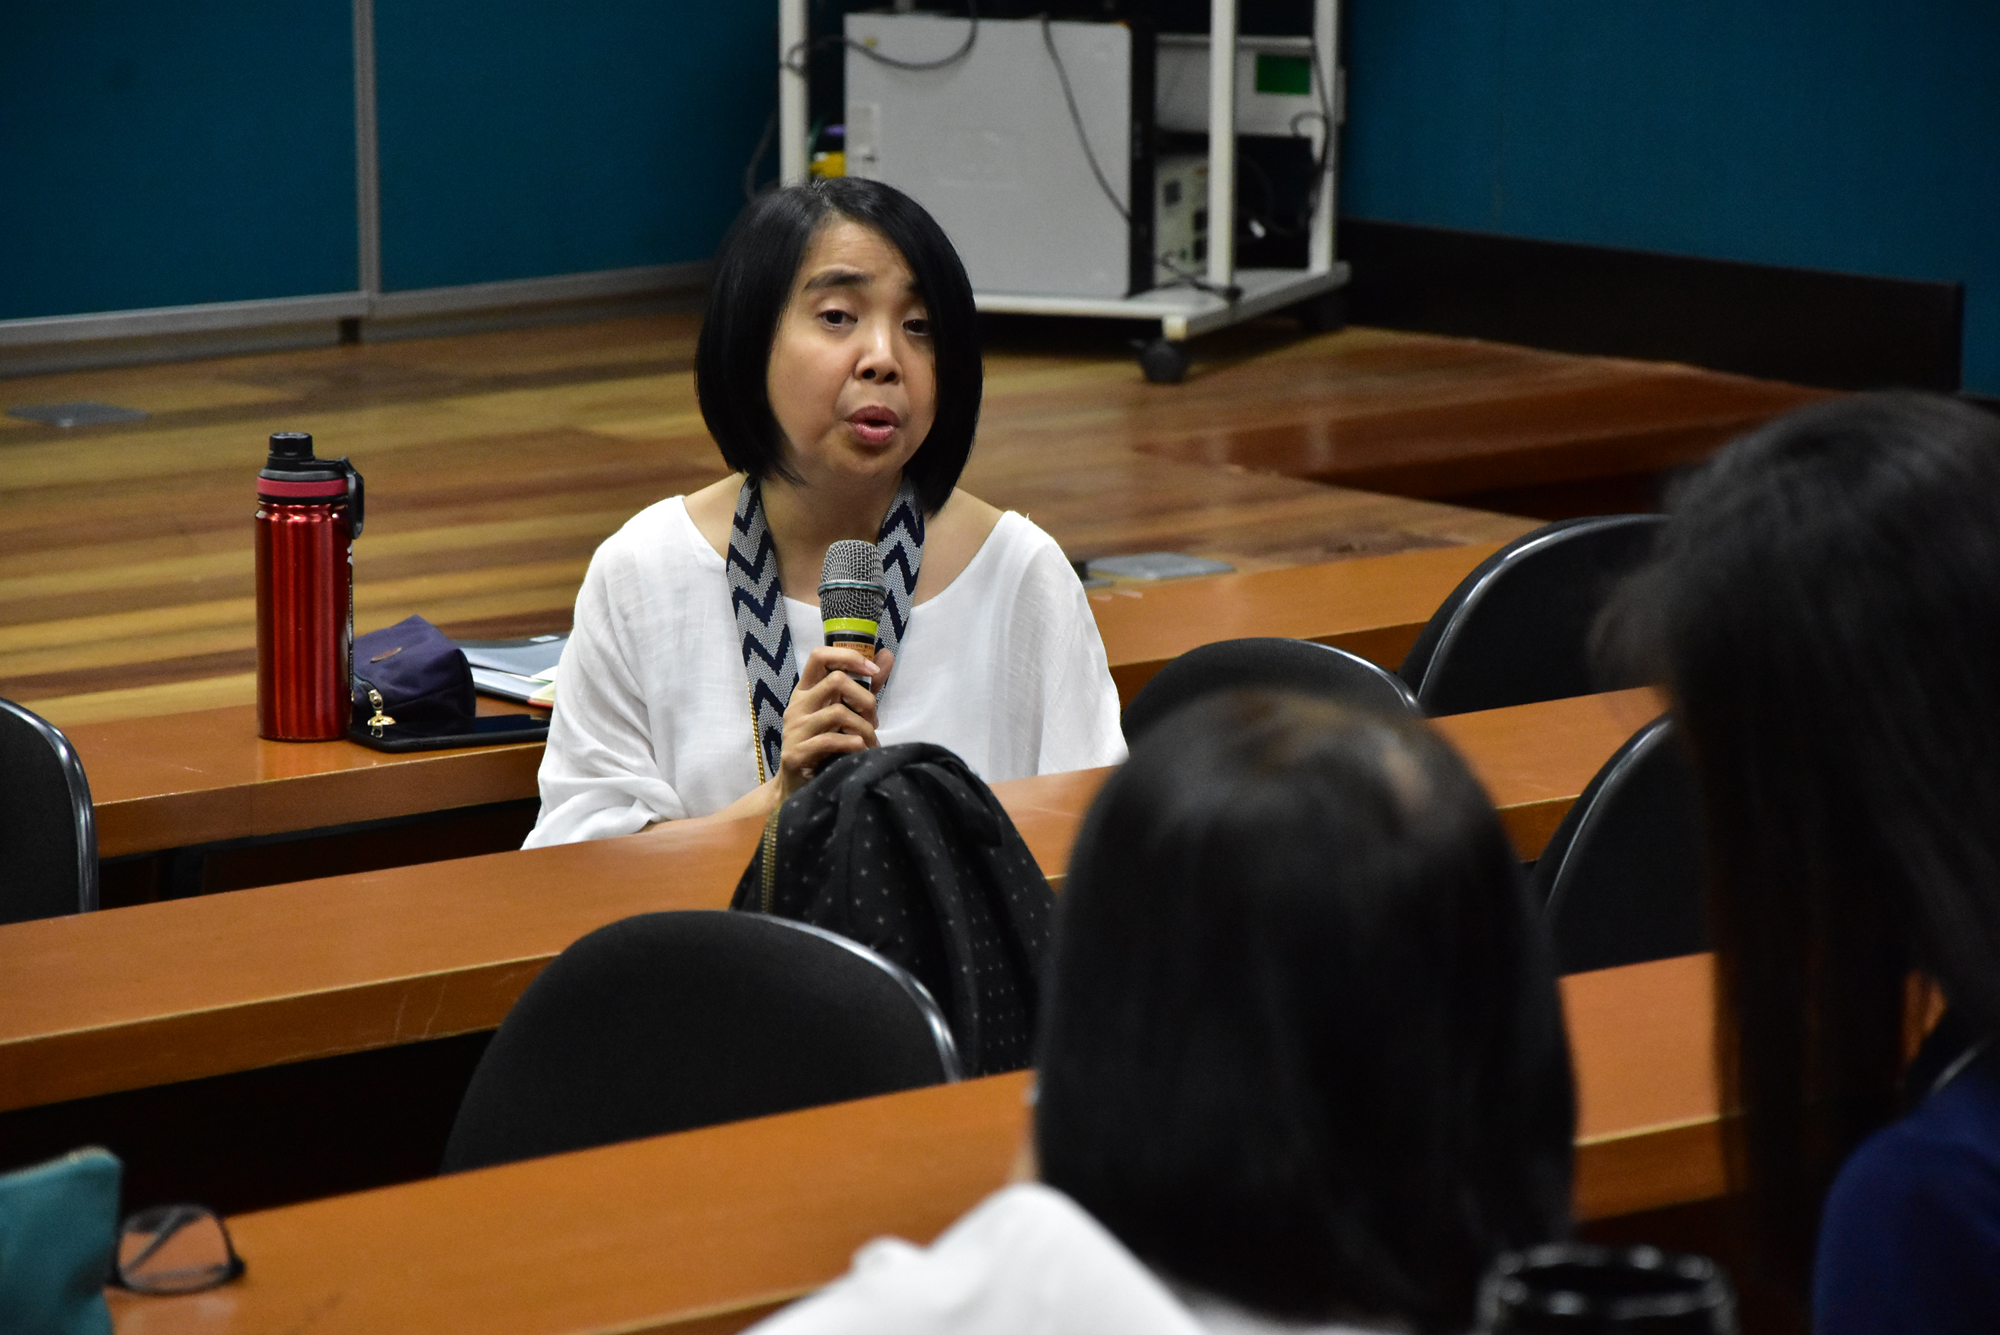 Dr. Jasmin Nario-Galace, Vice President for Academic Affairs (VPAA) commenting during the open forum